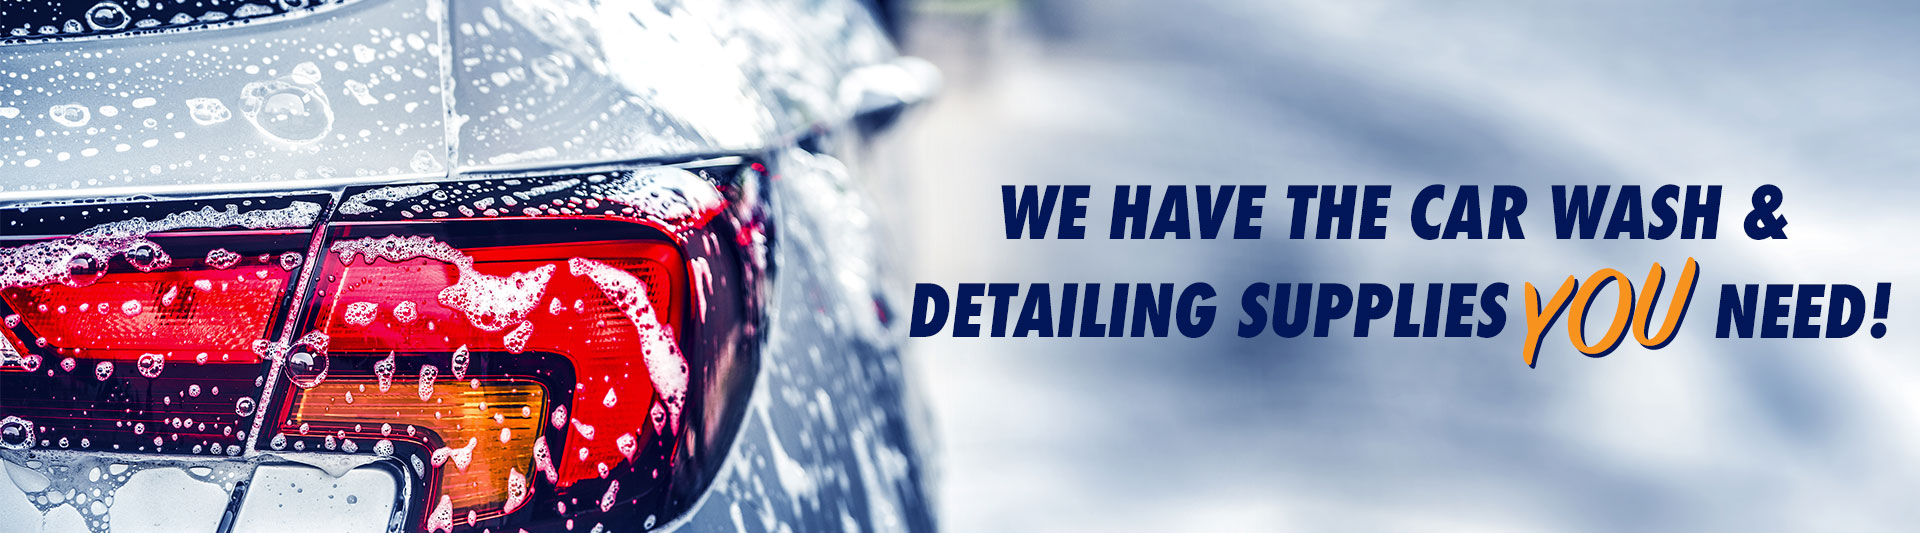 We have the car wash and detailing supplies you need!